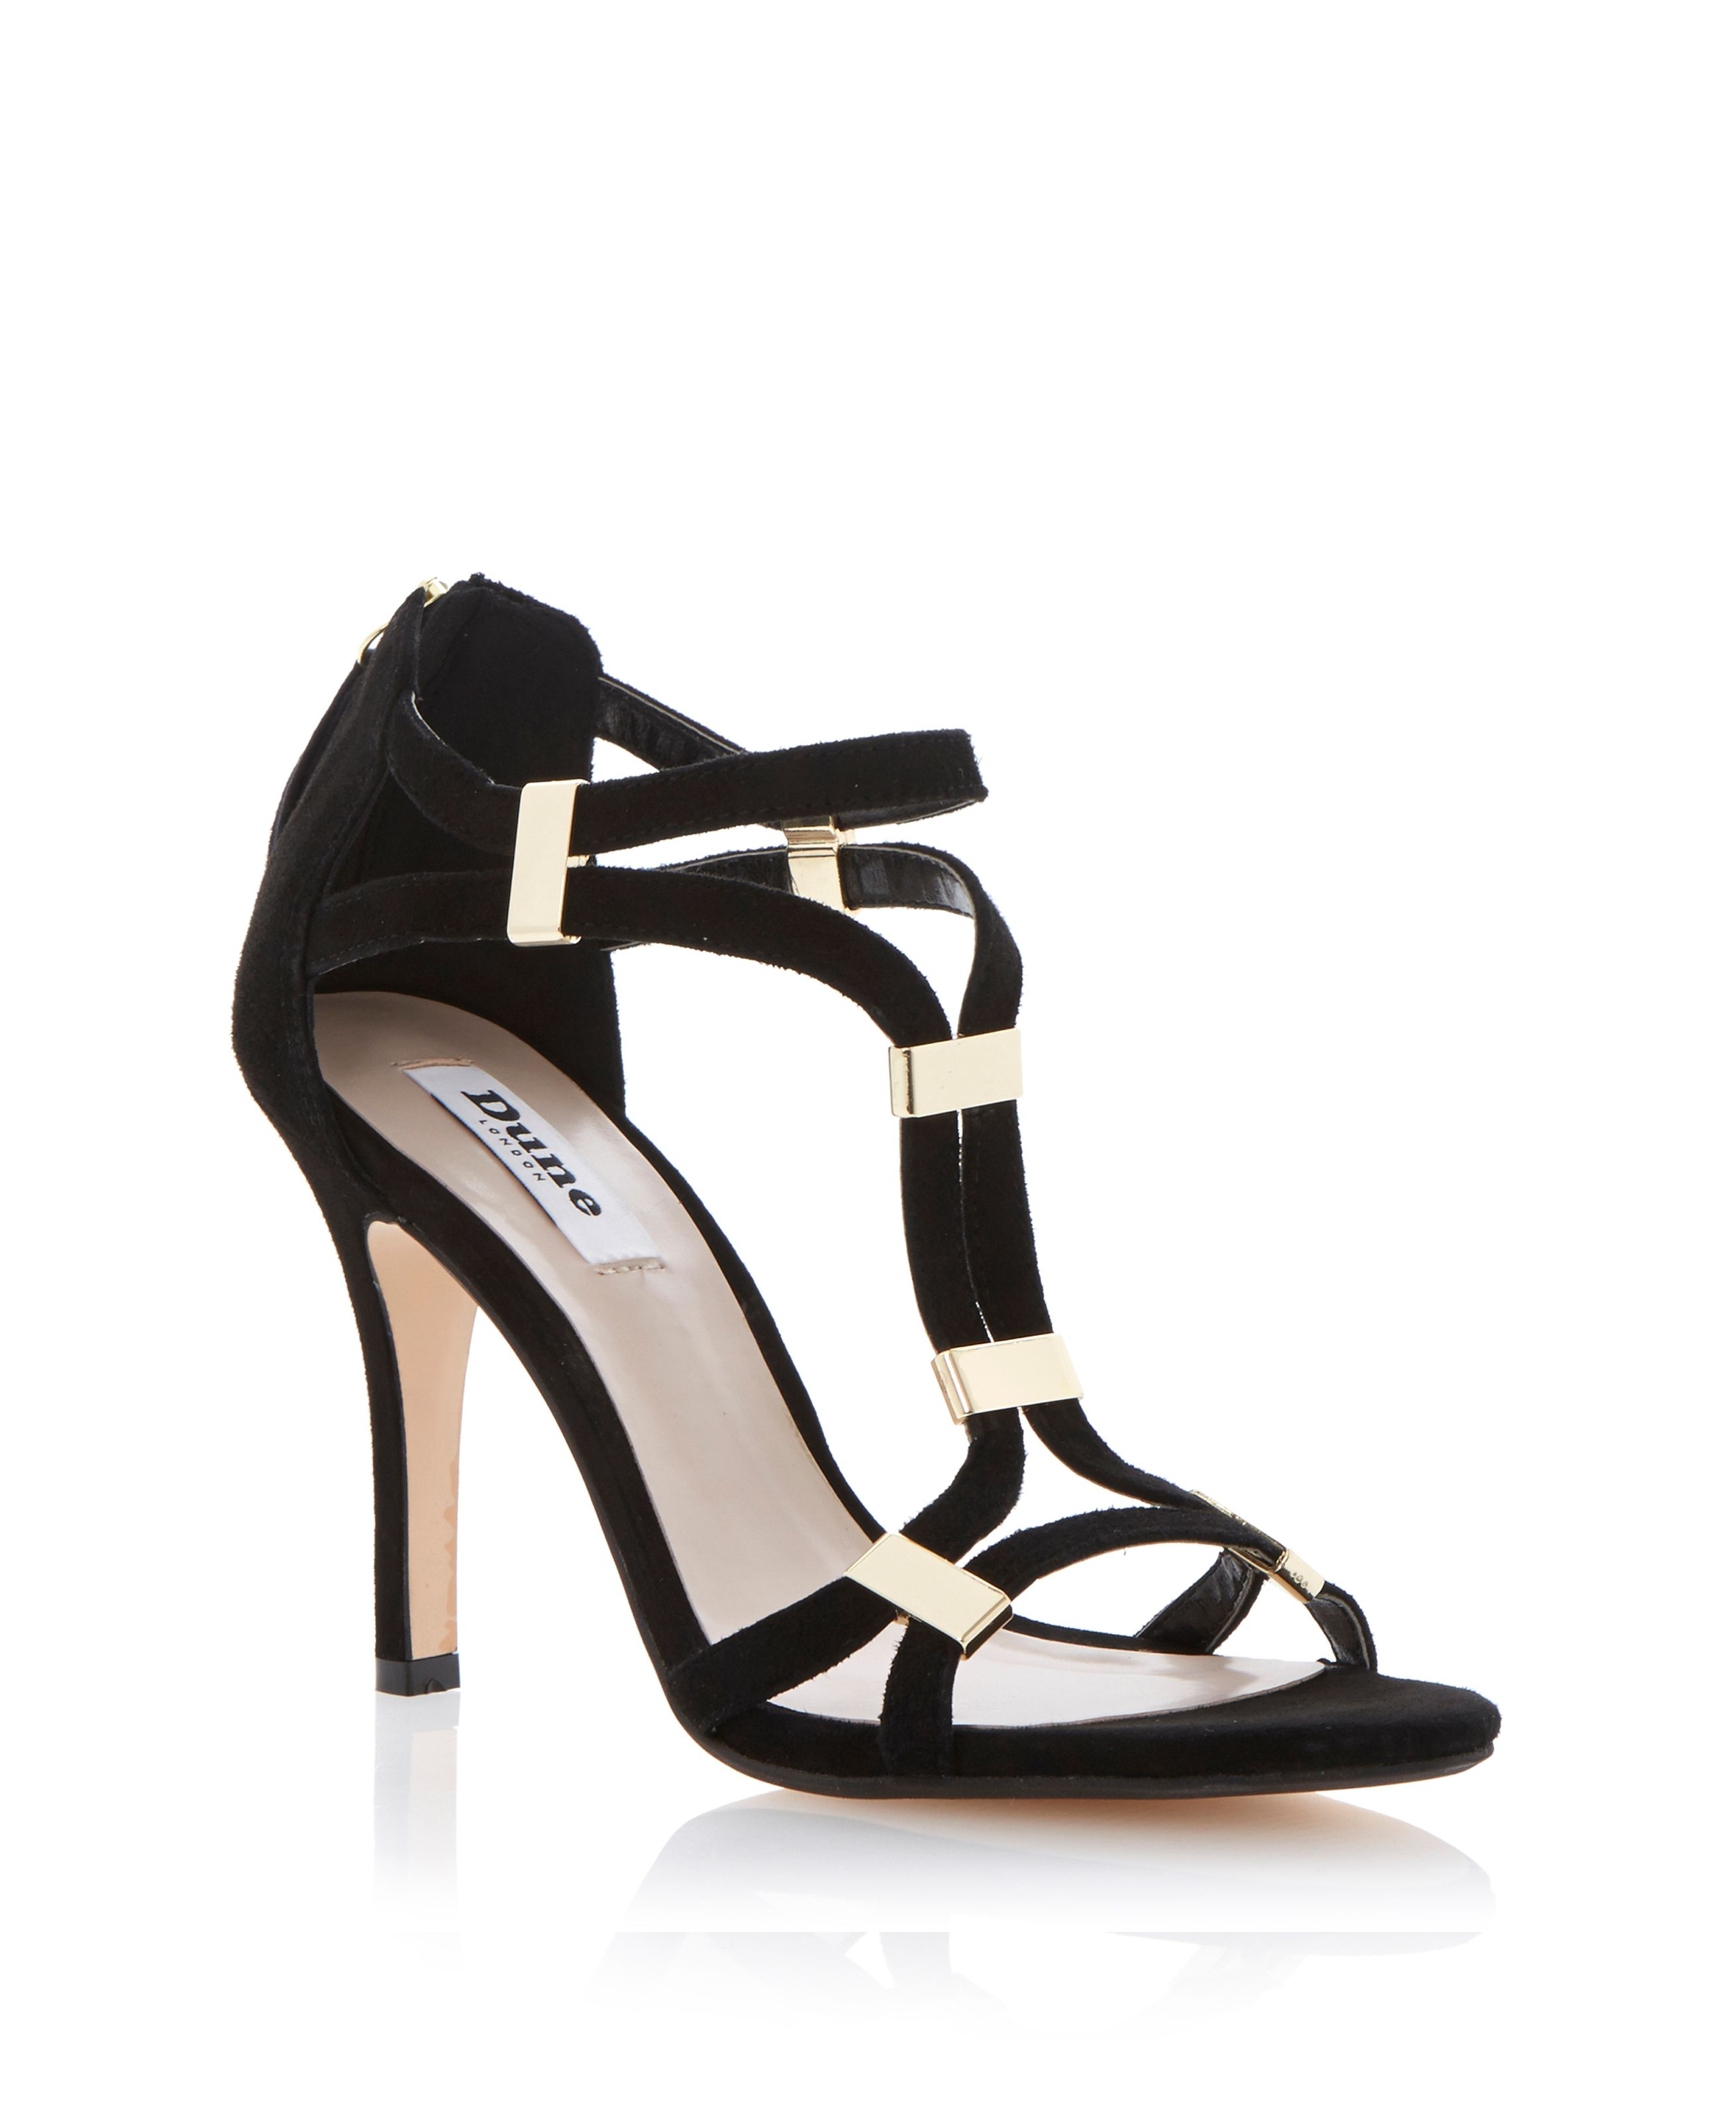 Harleigh suede stiletto dressy sandals